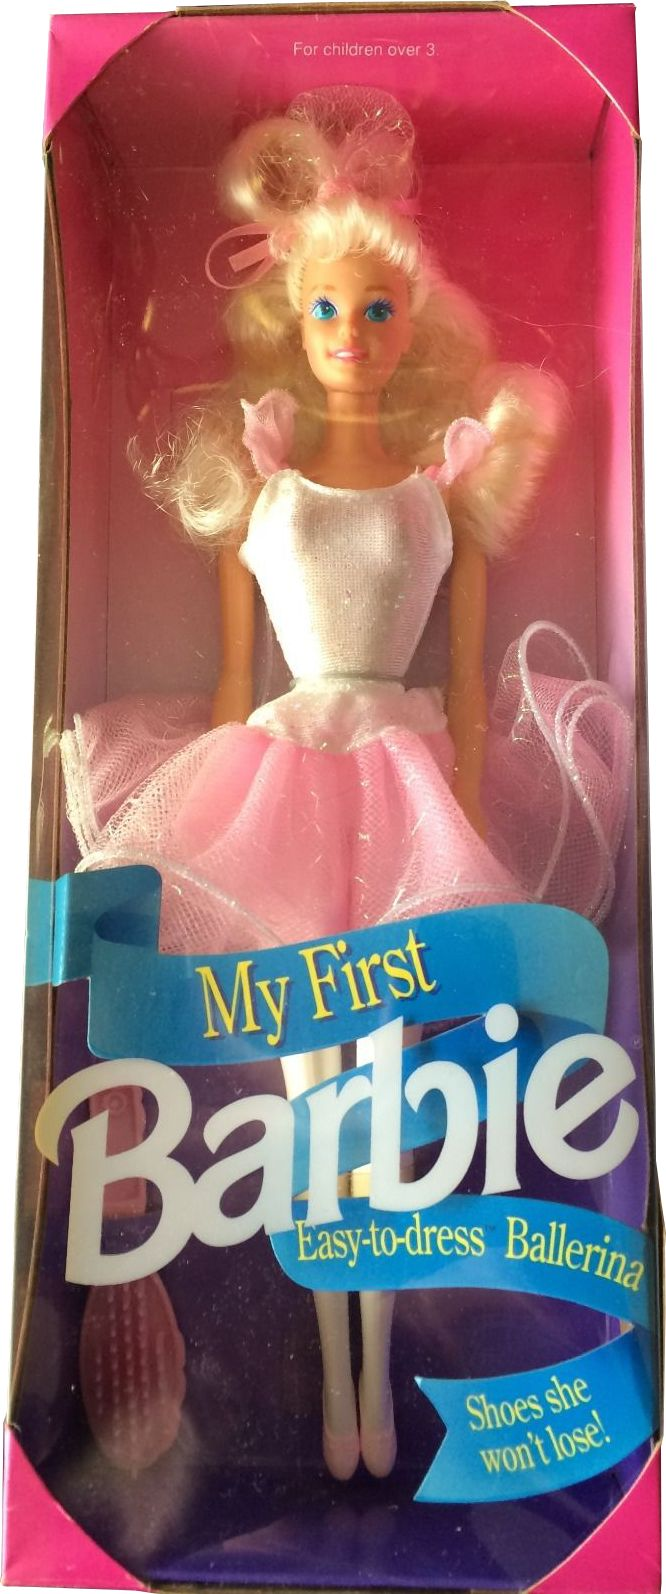 1992 My first ballerina Barbie doll 2 #2516 | Barbie